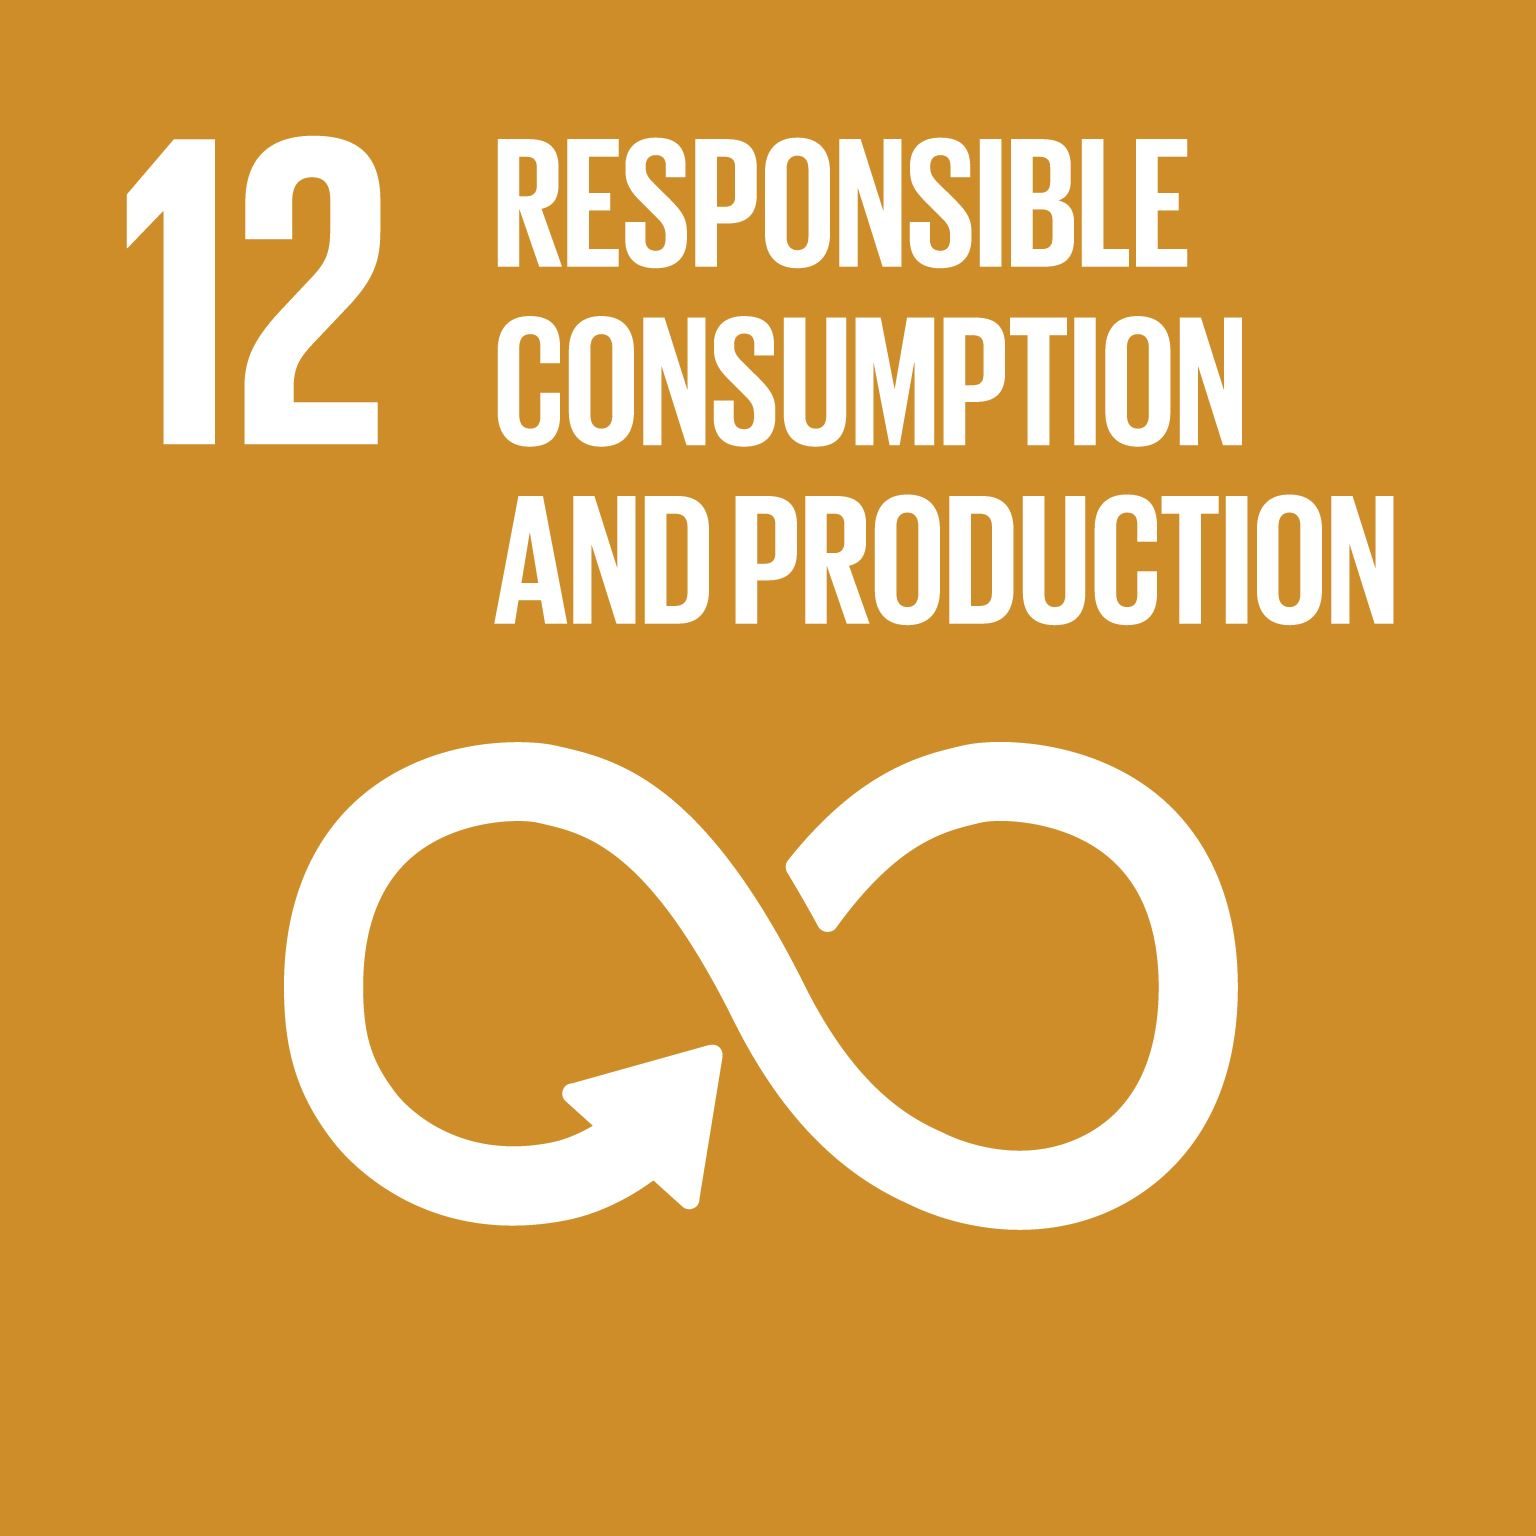 RESPONSIBLE CONSUMPTION AND PRODUCTION GOAL 12